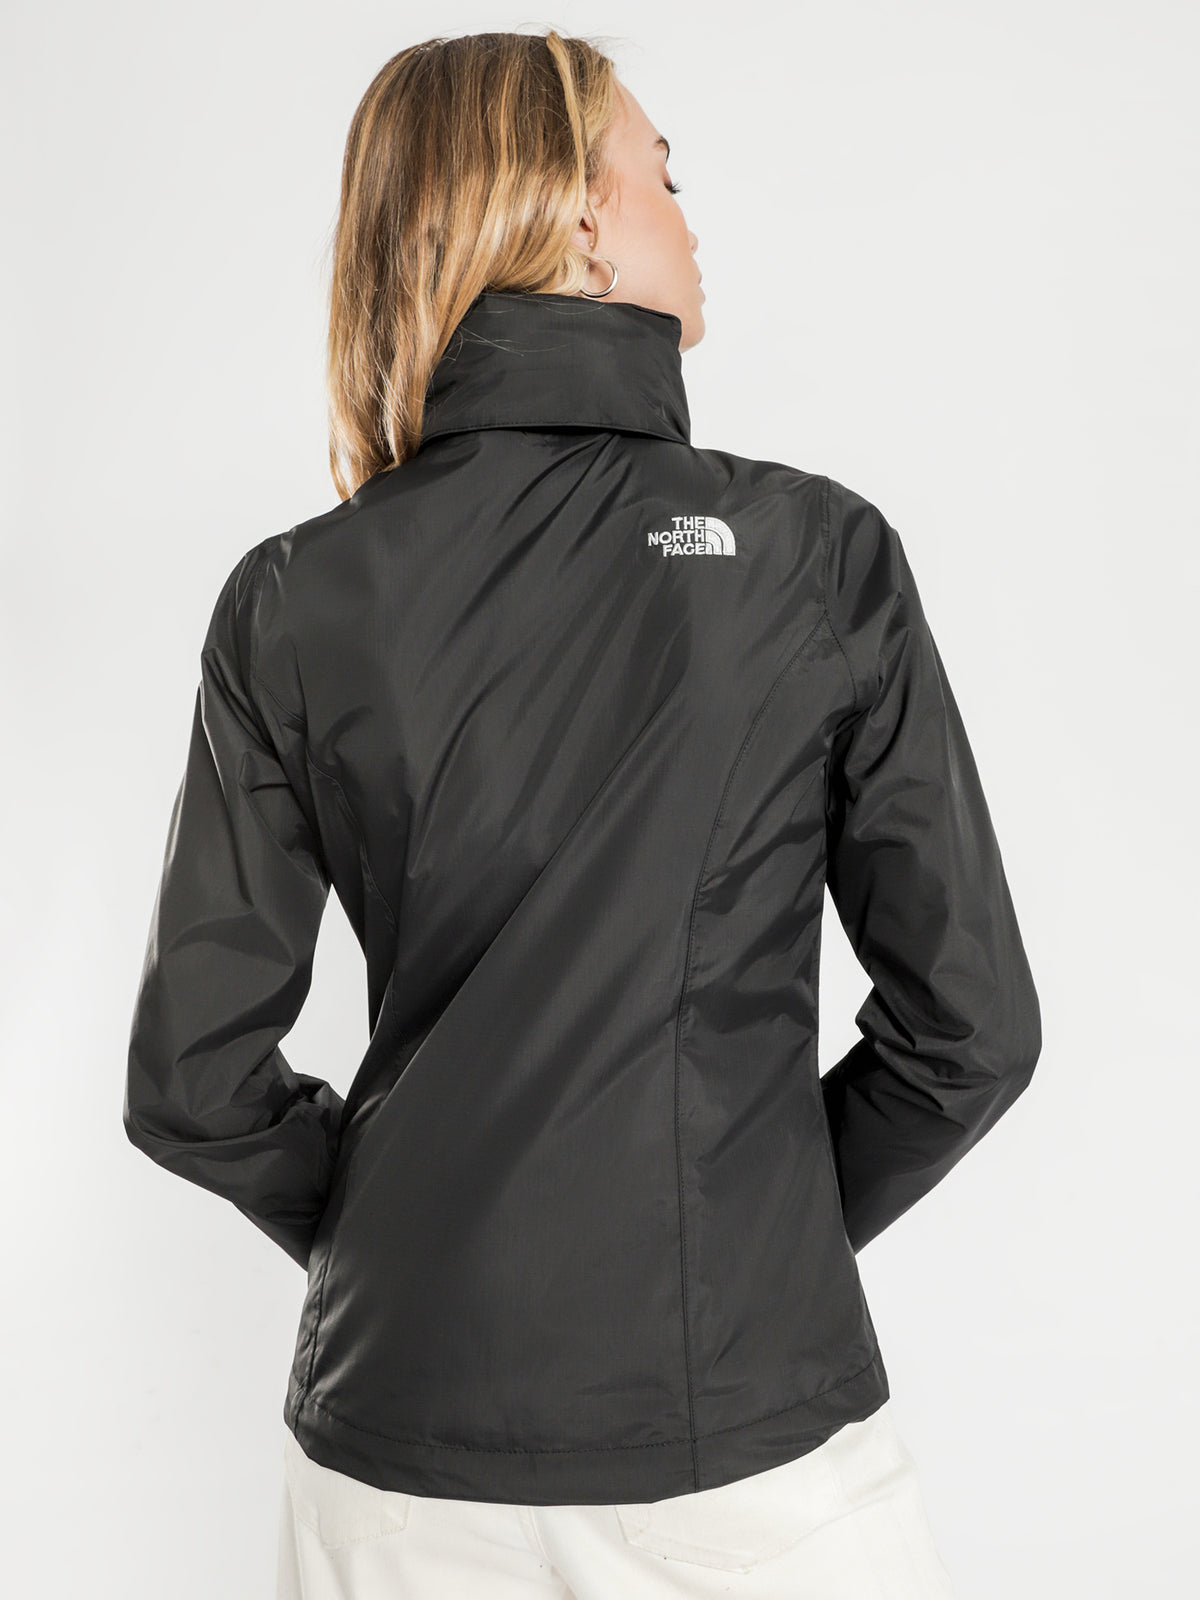 Resolve 2 Jacket in Black